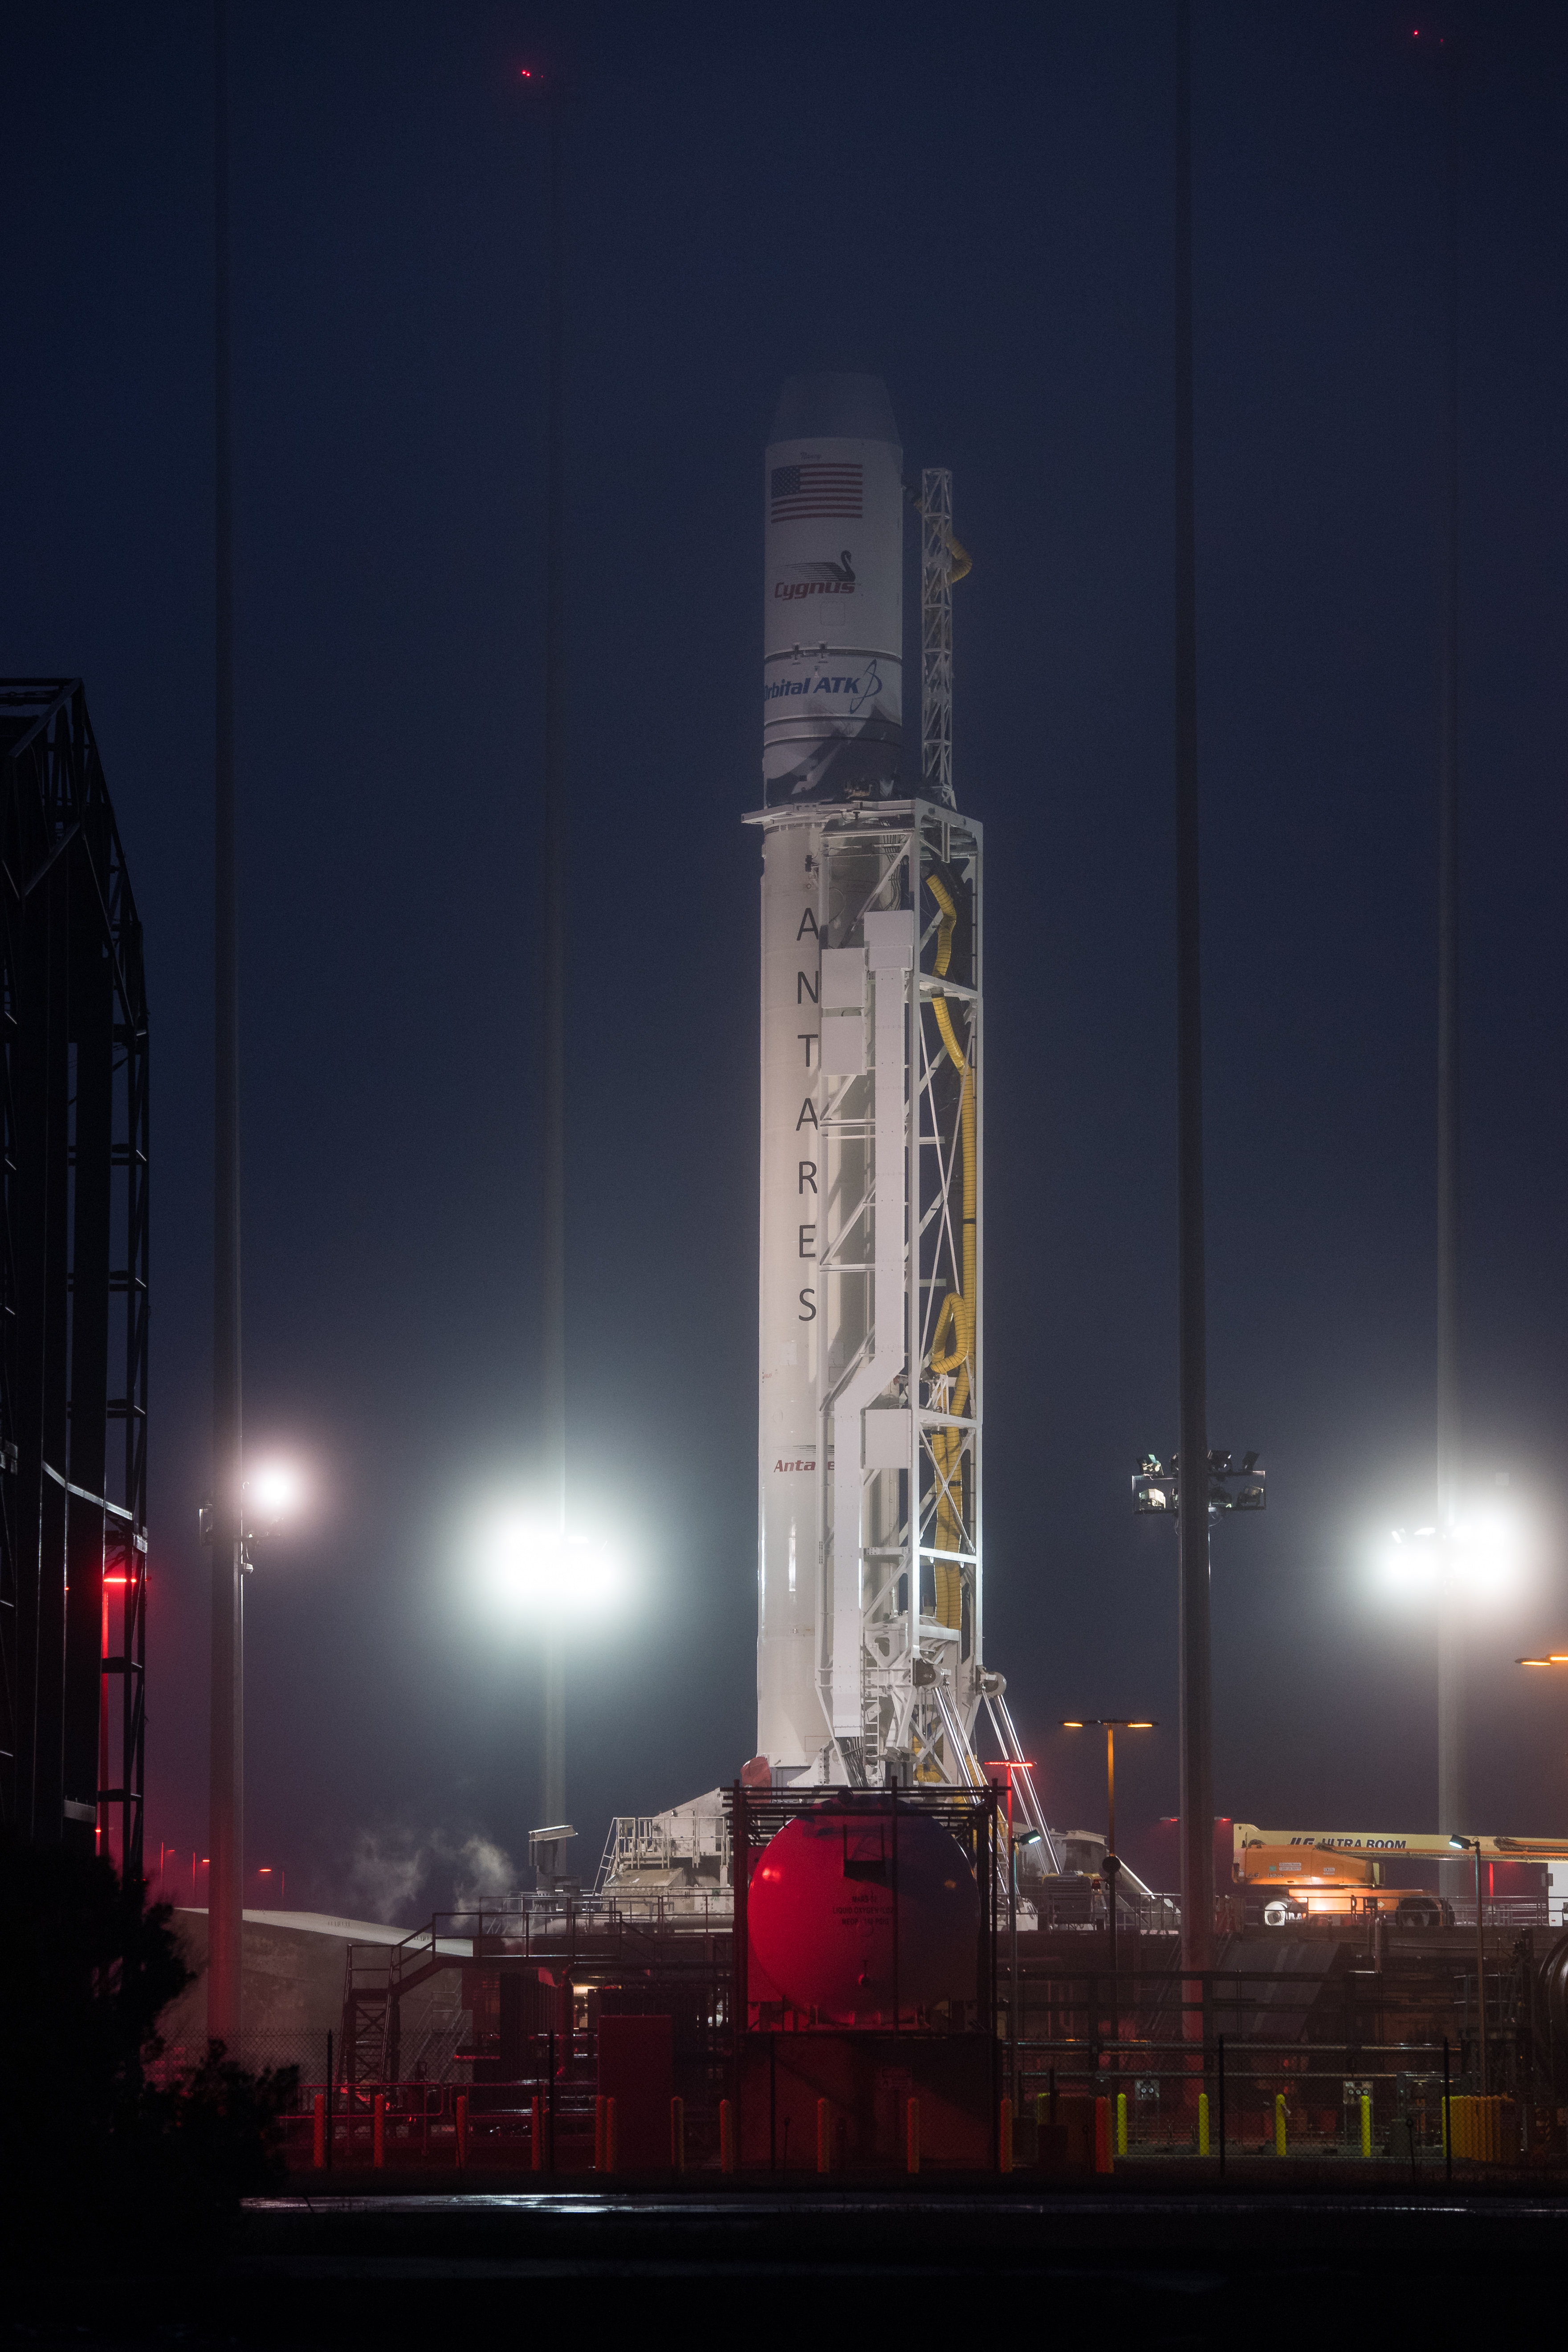 Latest Launch Forecast Puts Weather at 70